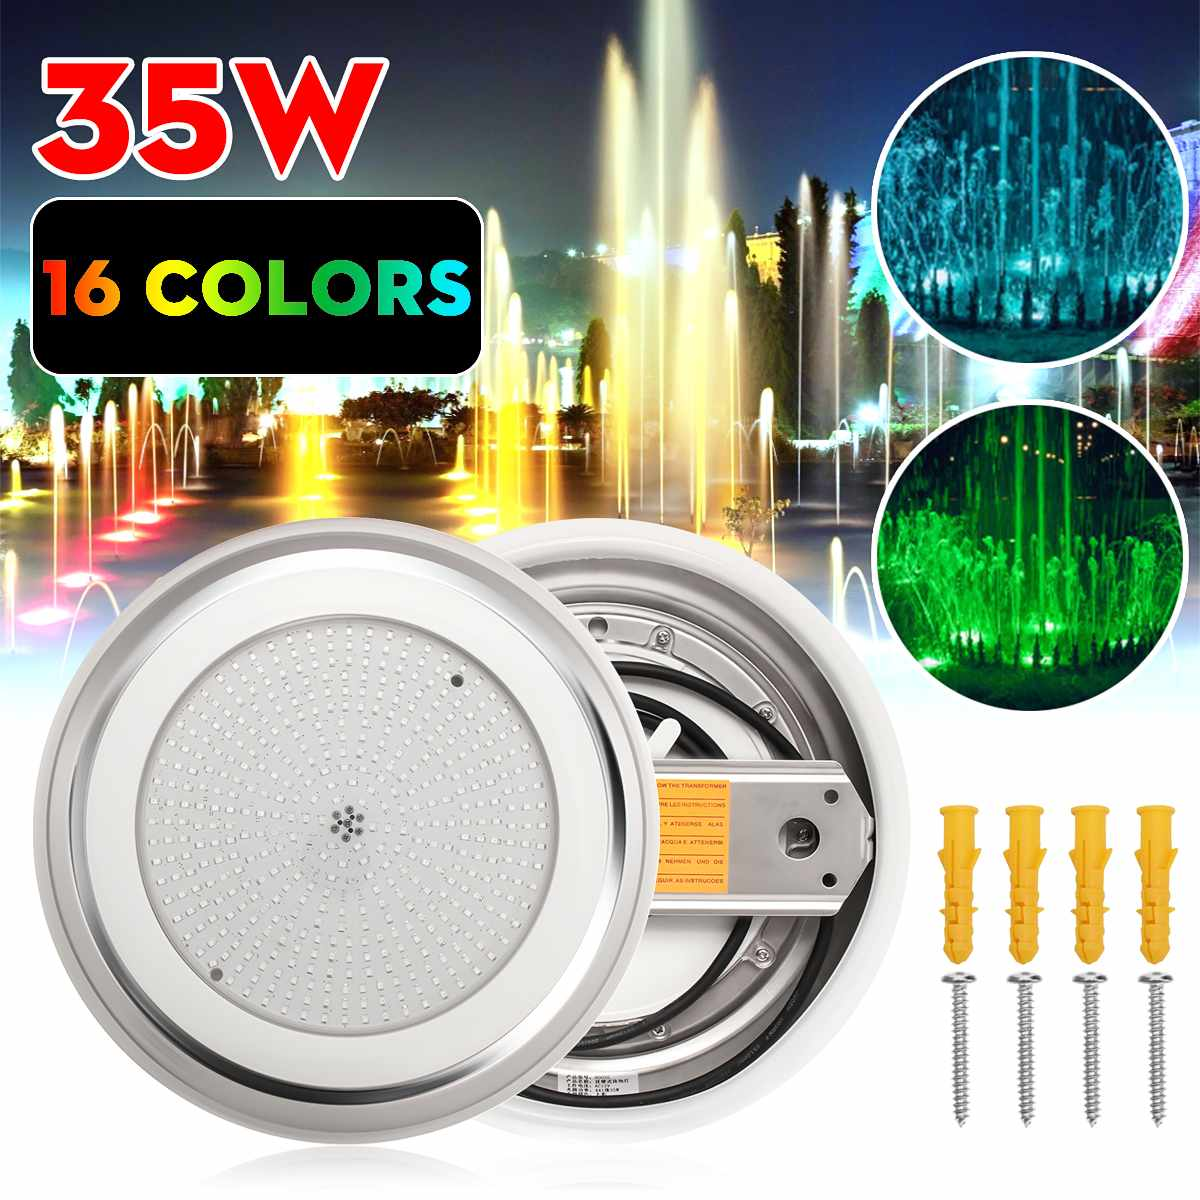 Underwater Lights LED Swimming Pool Lights 16 Colors RGB 12V 45W Wall Mounted Lamp IP68 Multi-Color For Aquarium Ligh